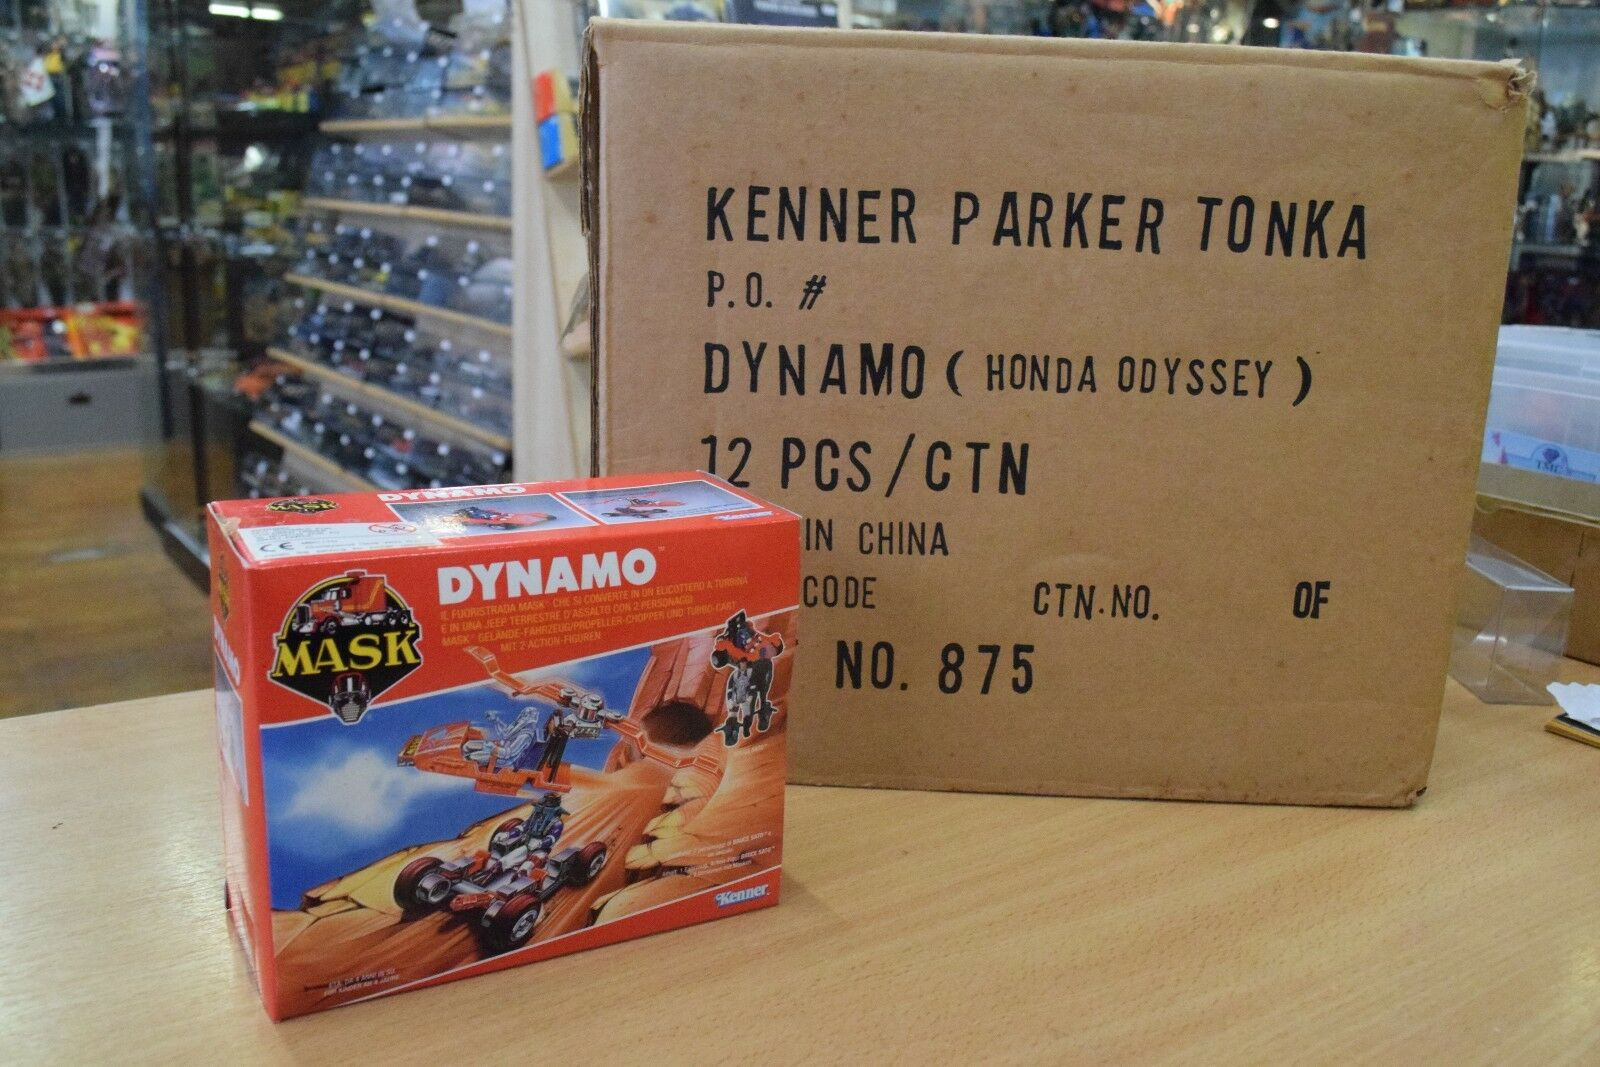 Kenner M.A.S.K. Mask Dynamo MISB sealed + original shipping case Honda Odyssey